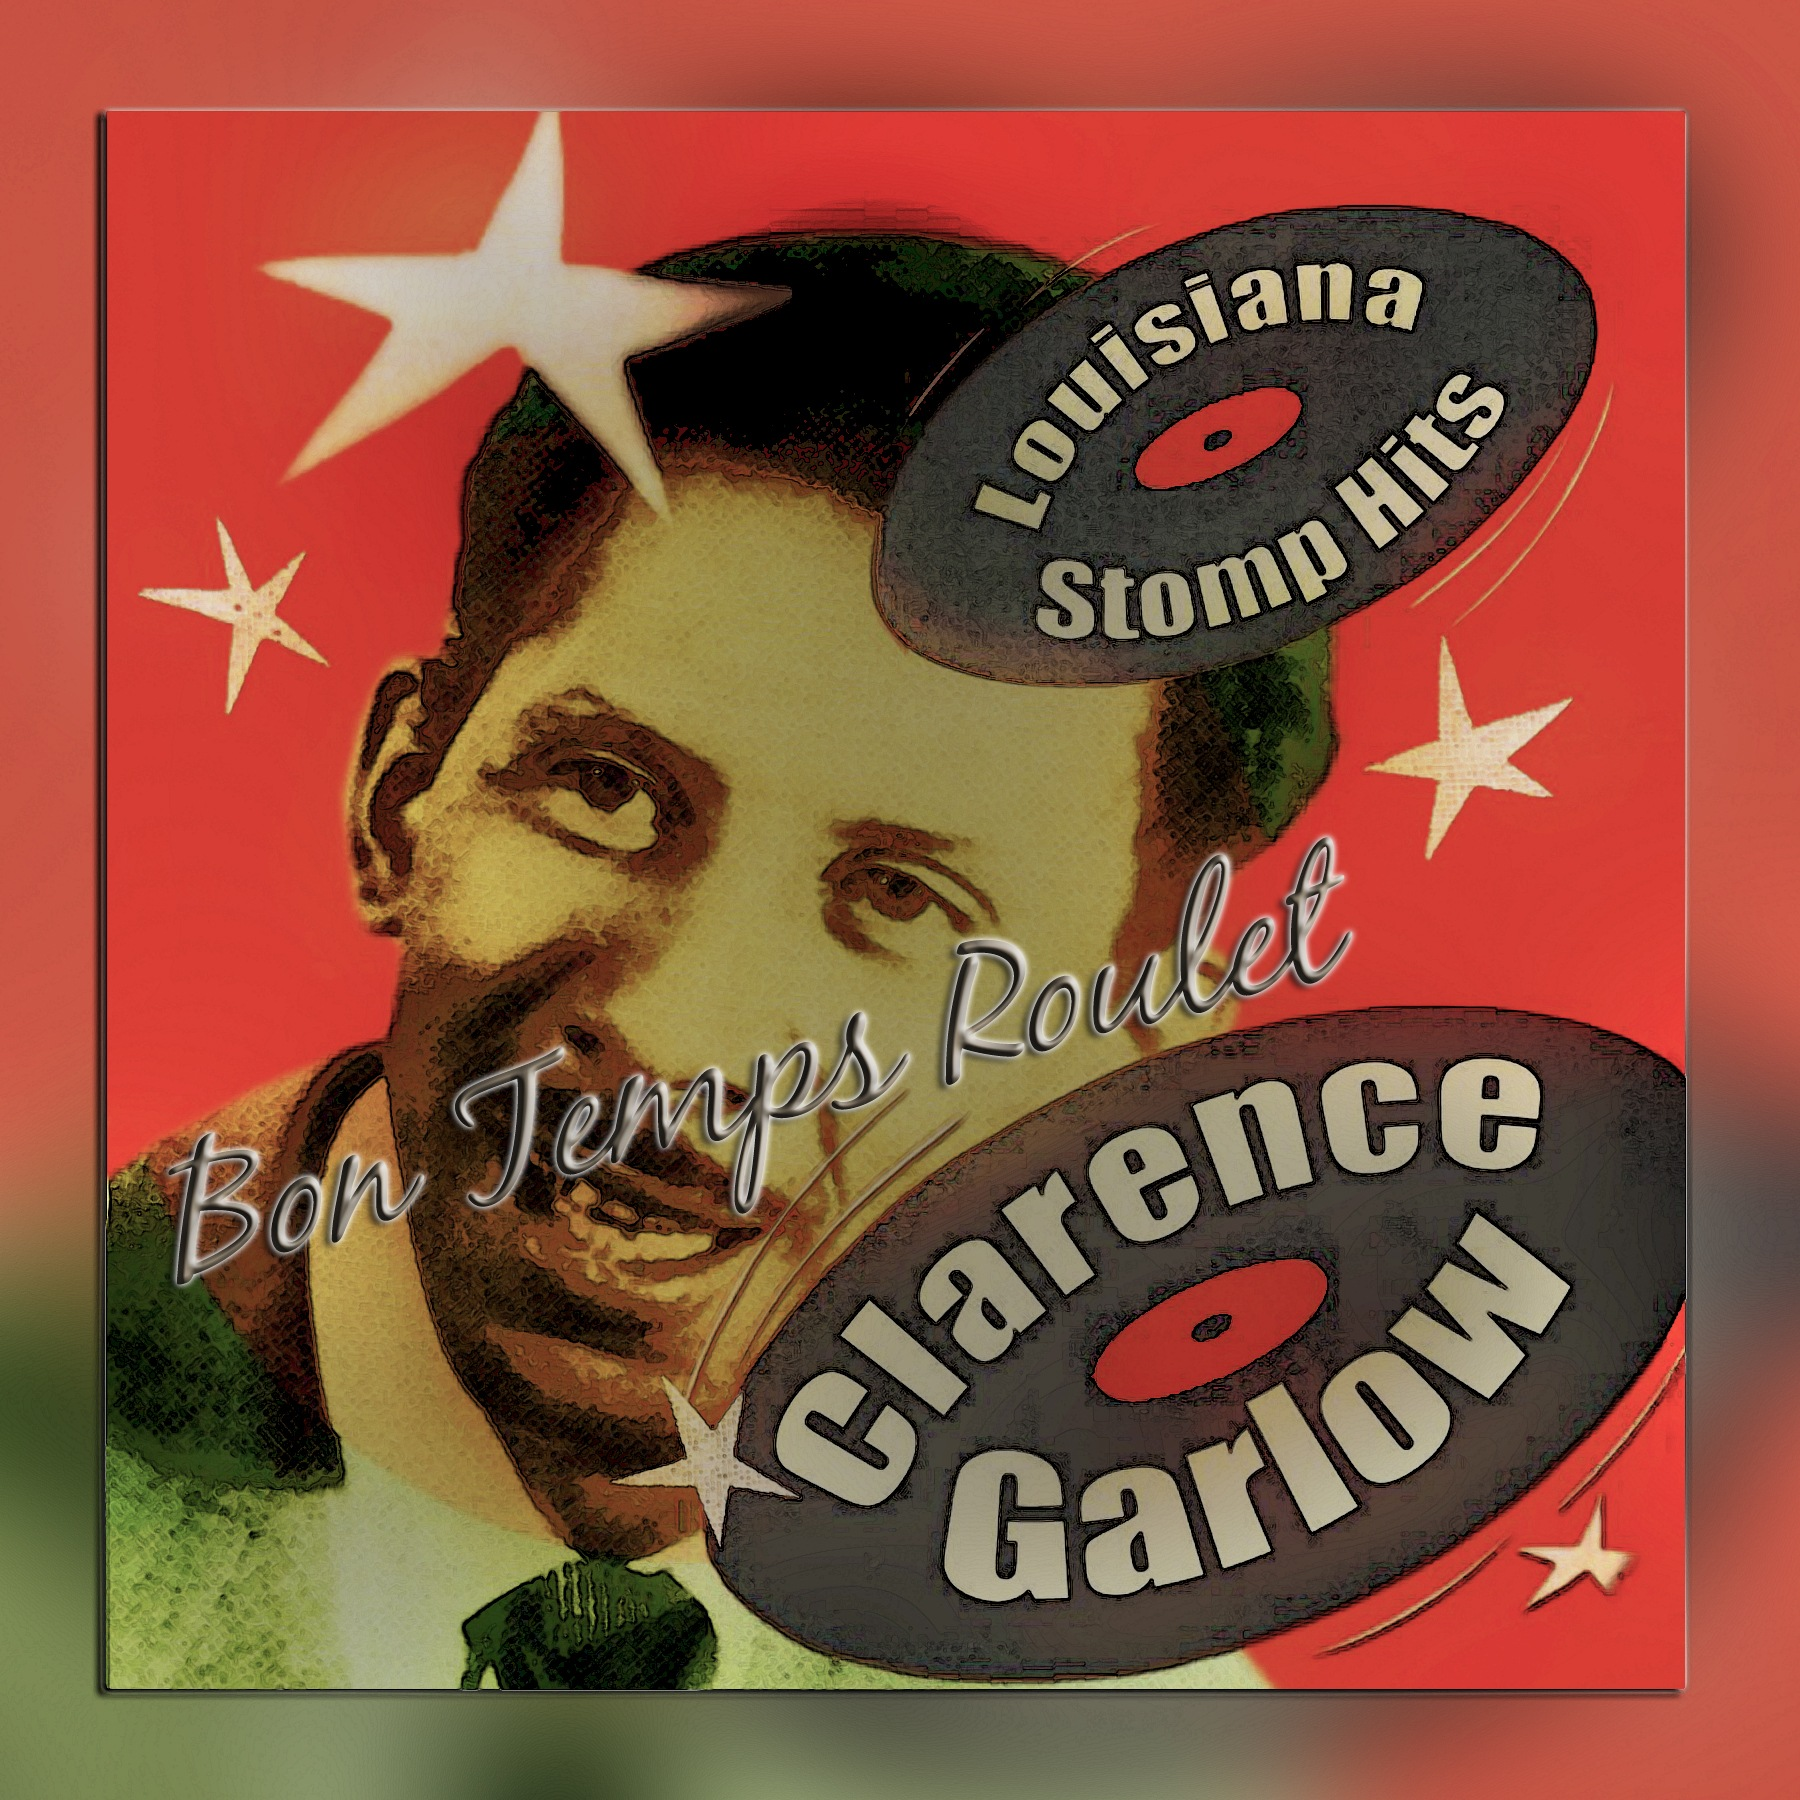 LP Covers: Clarence Garlow by Mikael Rennerhorn